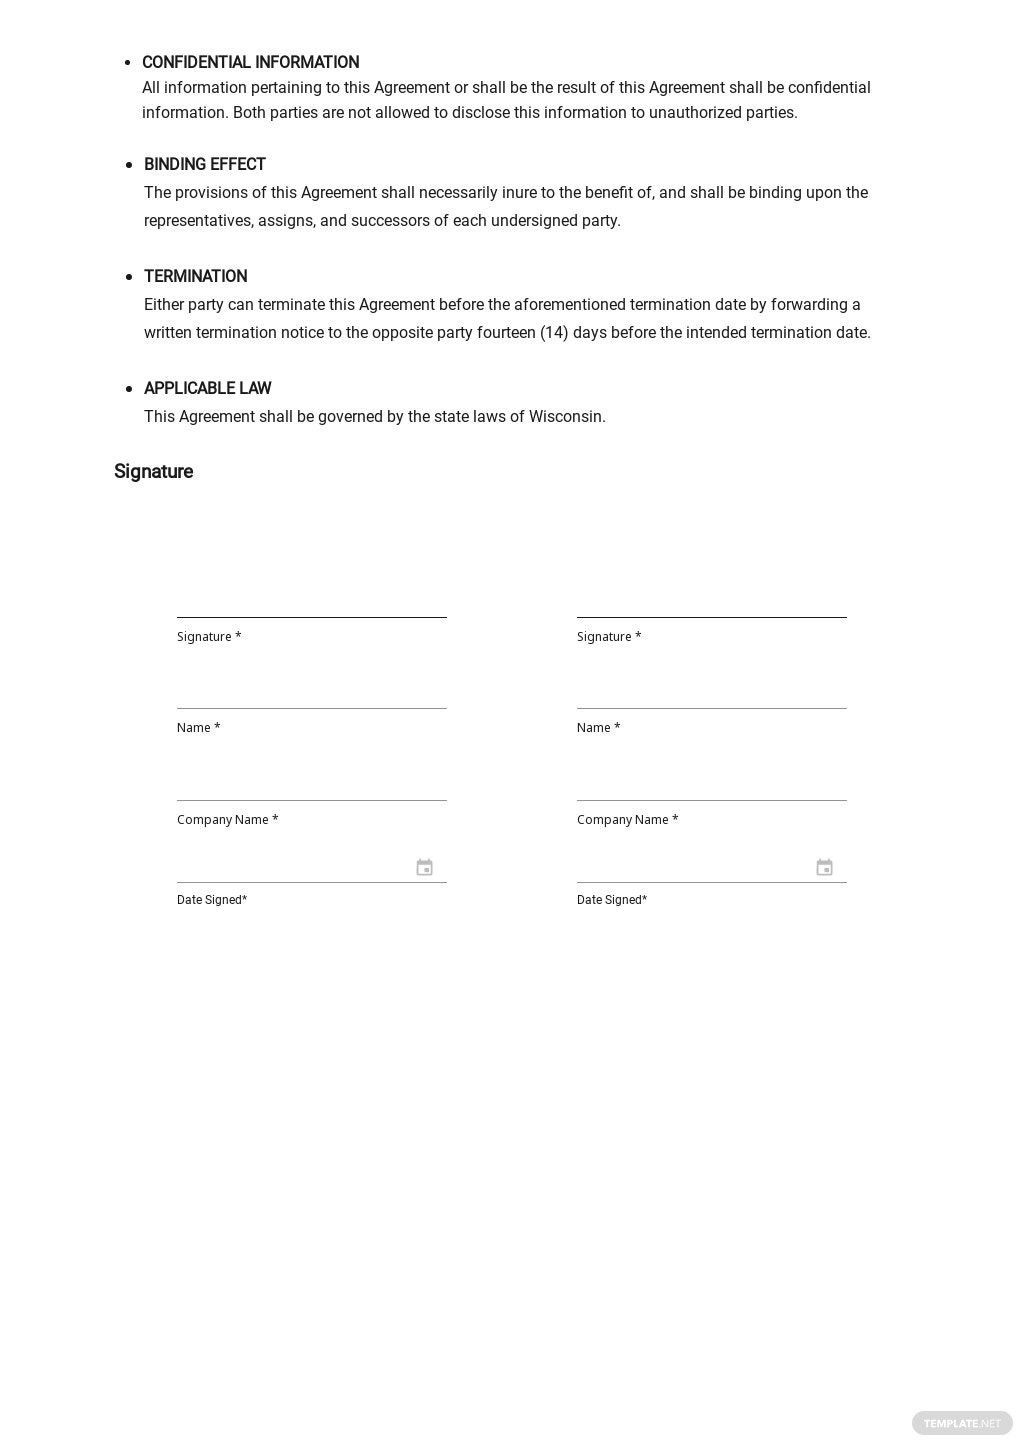 FREE Undertaking of Indemnification Director Template - Google Docs, Word, Apple Pages